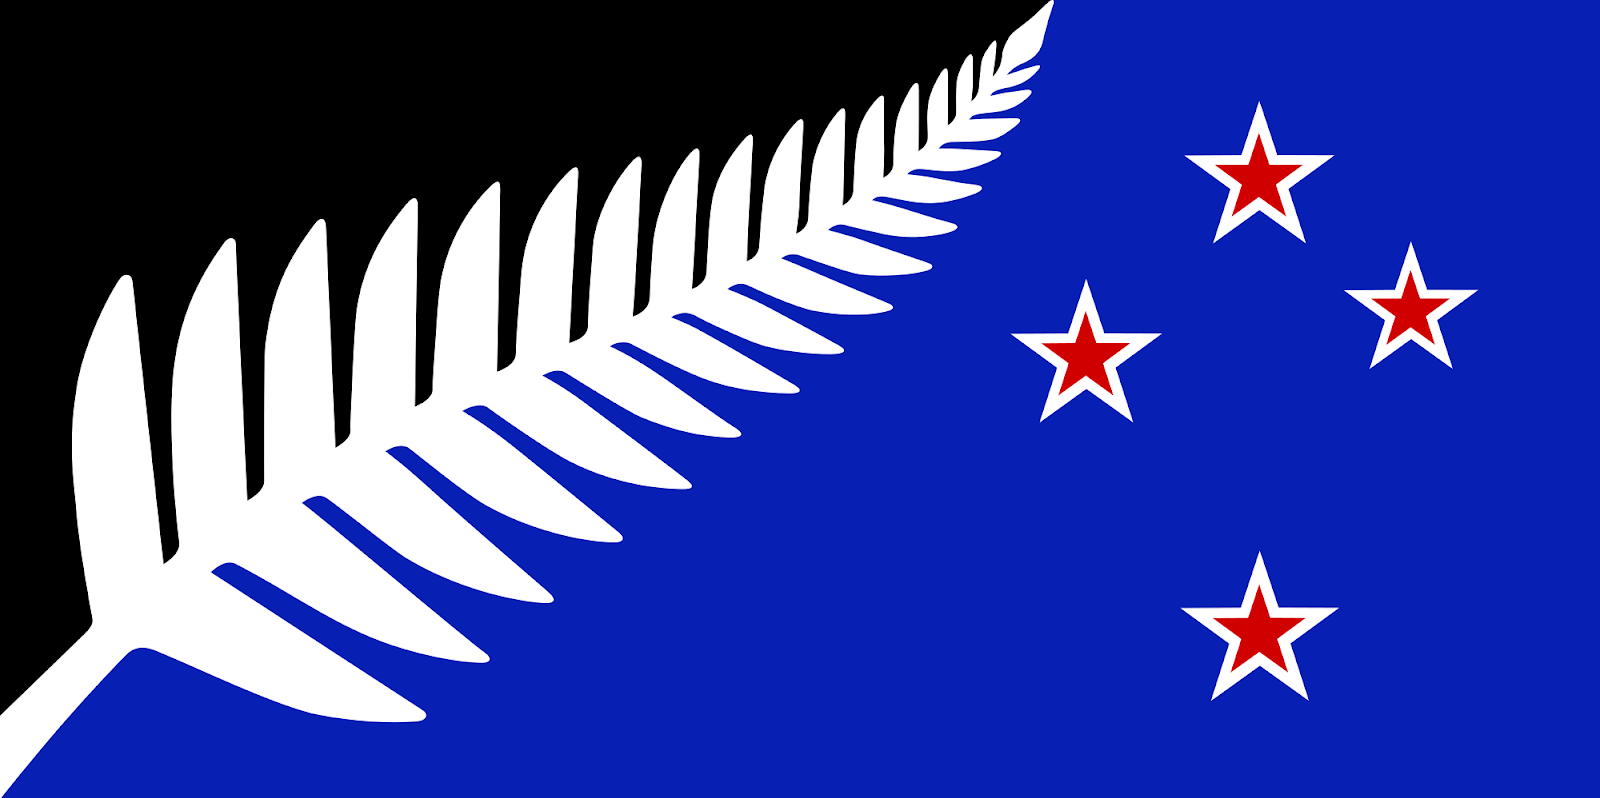 The official silver fern flag ...